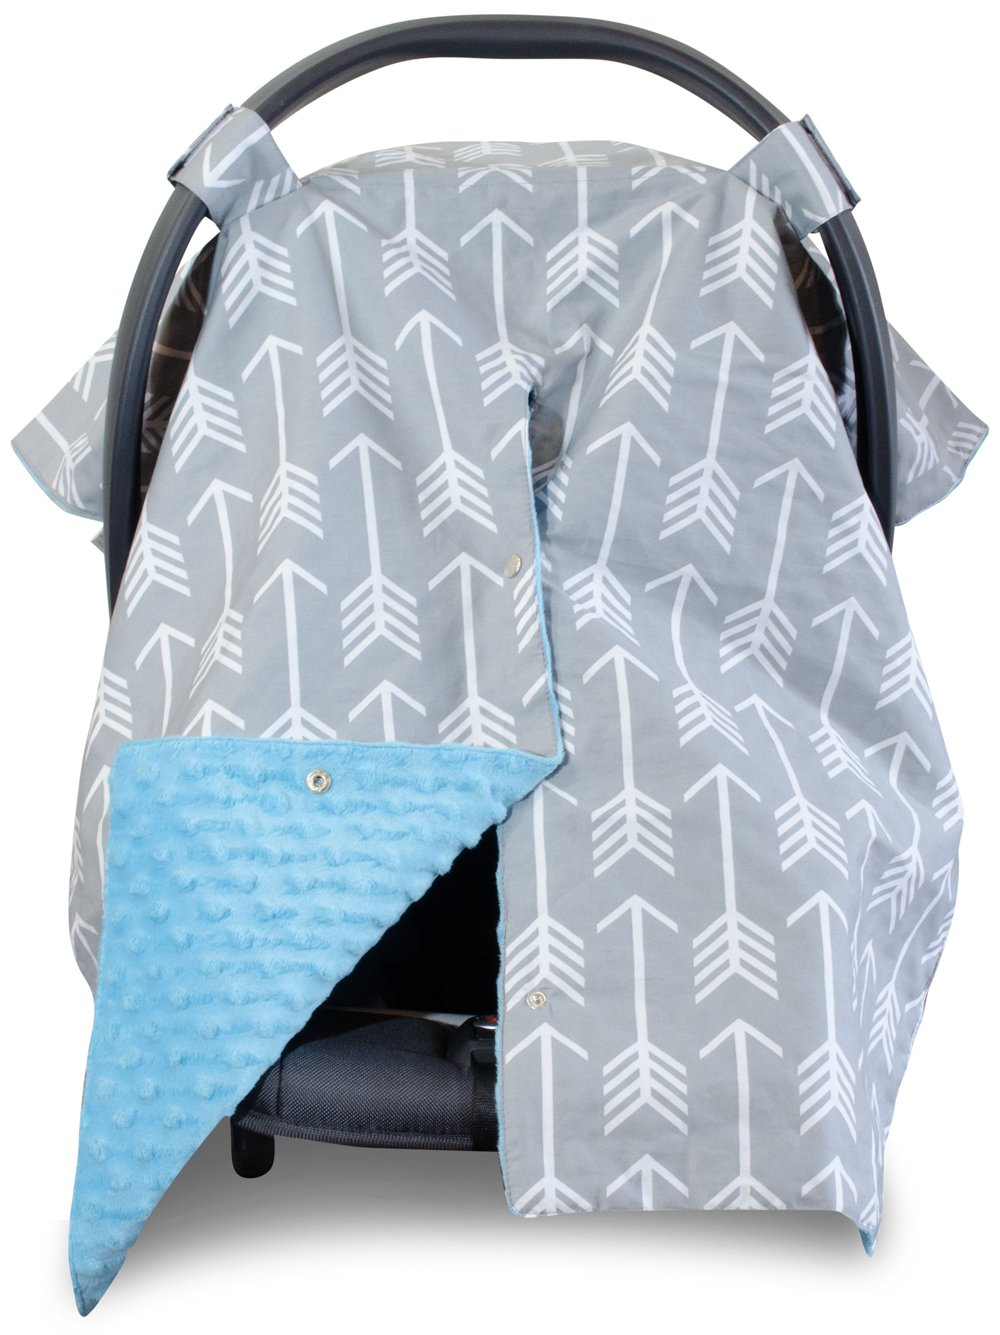 Kids N Such Baby Canopy Cover For Car Seat With Peekaboo Opening